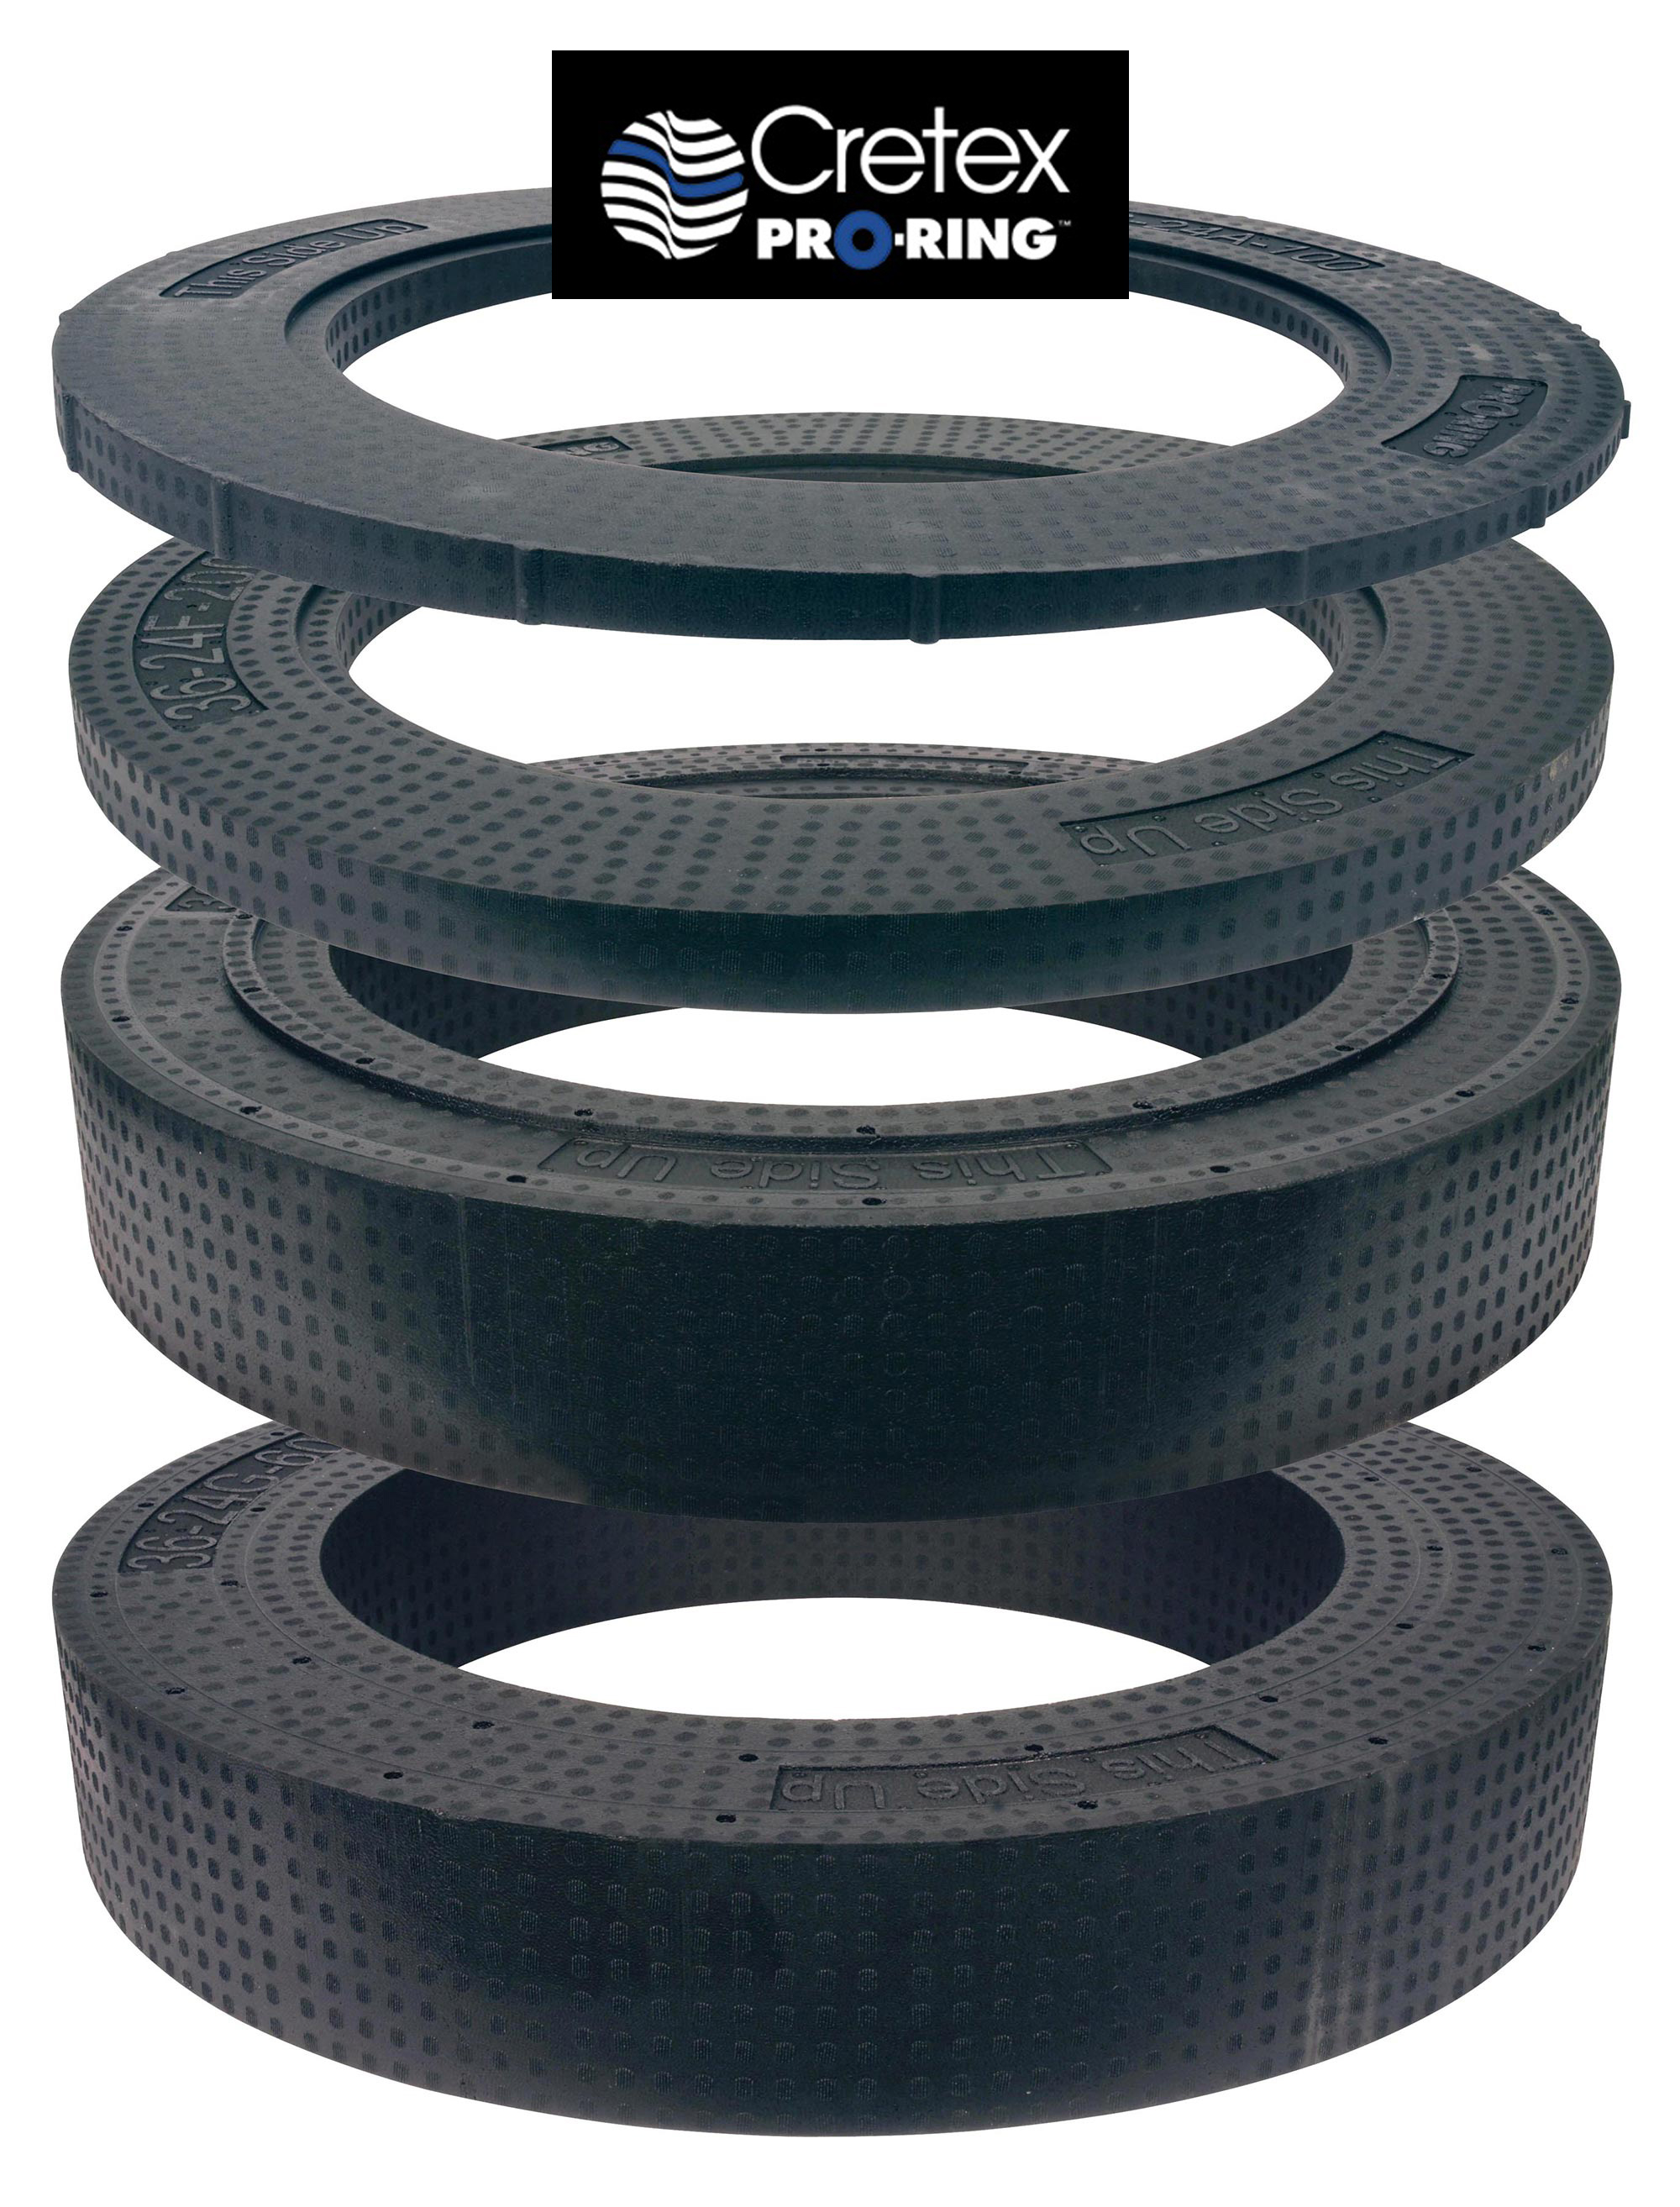 Cretex Pro-Ring System - Manhole Grade Adjustment System Rings